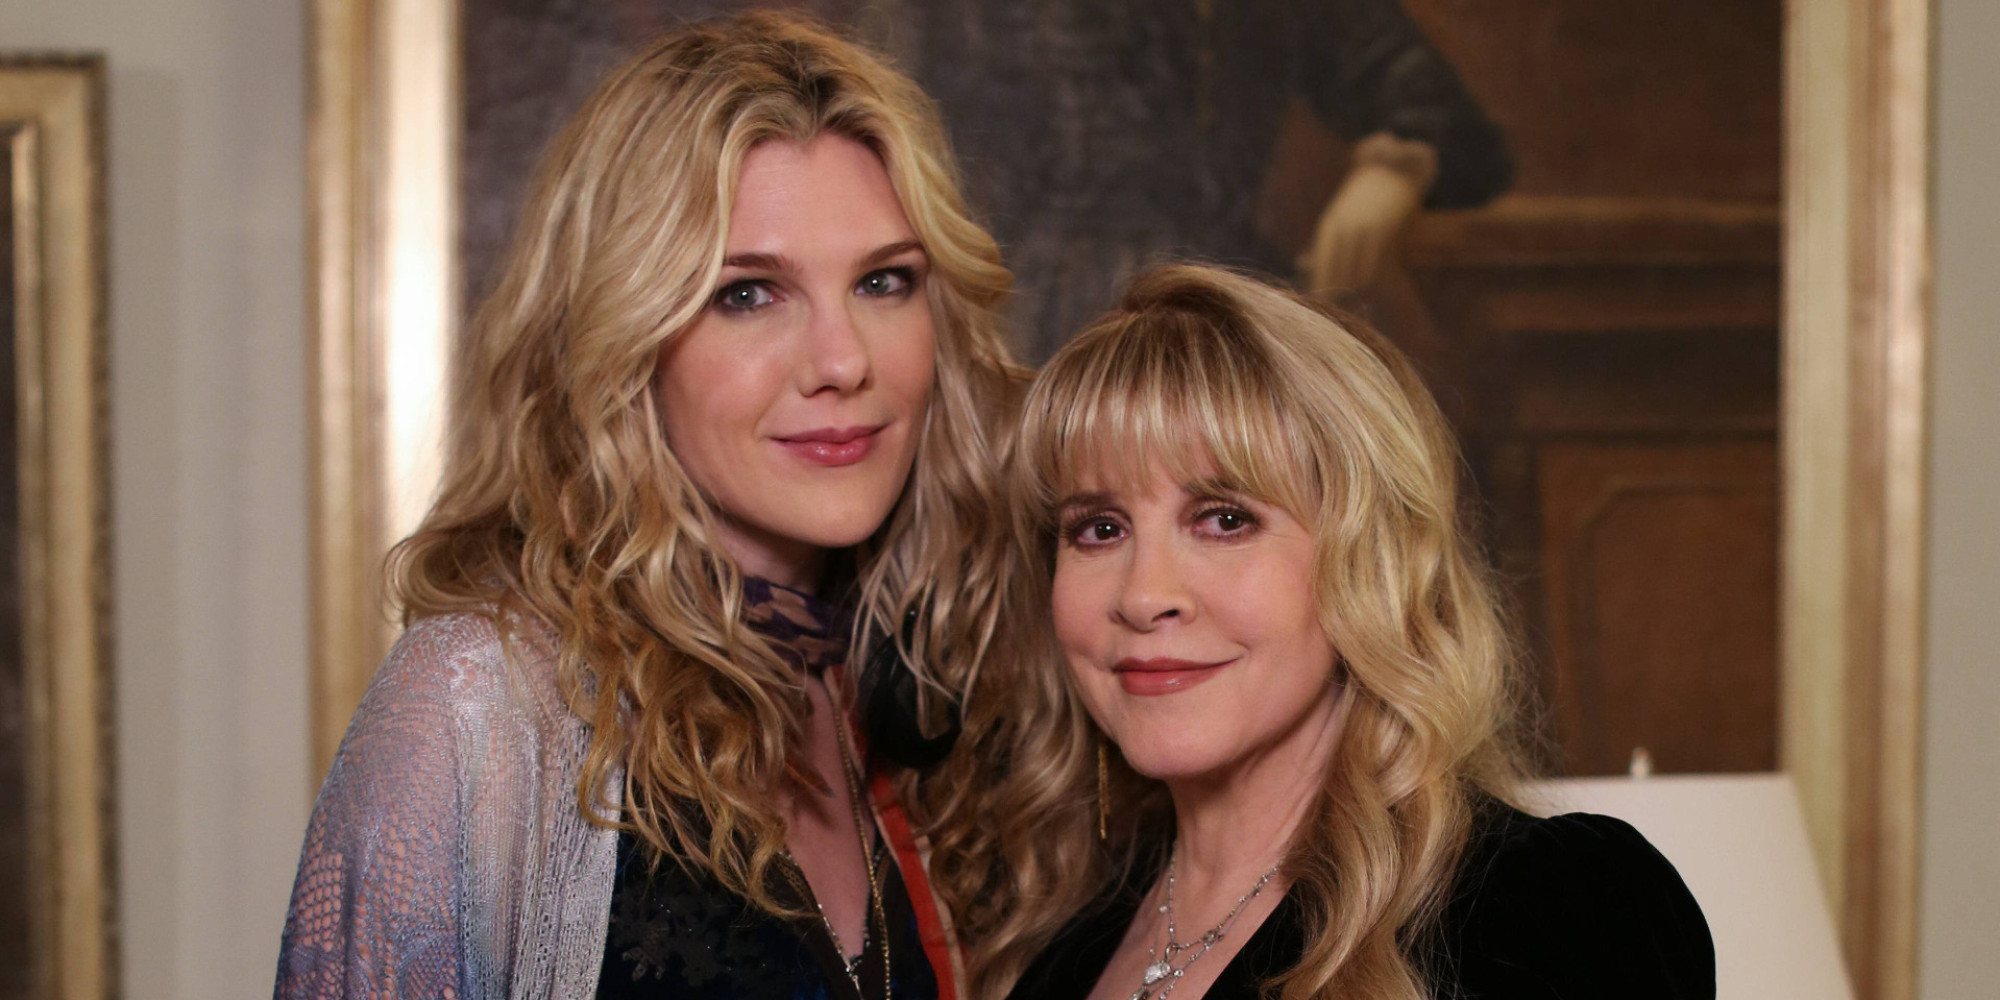 AMERICAN HORROR STORY: COVEN The Magical Delights of Stevie Nicks - Episode 310 (Airs Wednesday, January 8, 10:00 PM e/p) --Pictured: (L-R) Lily Rabe as Misty Day, Stevie Nicks as herself -- CR. Michele K. Short/FX